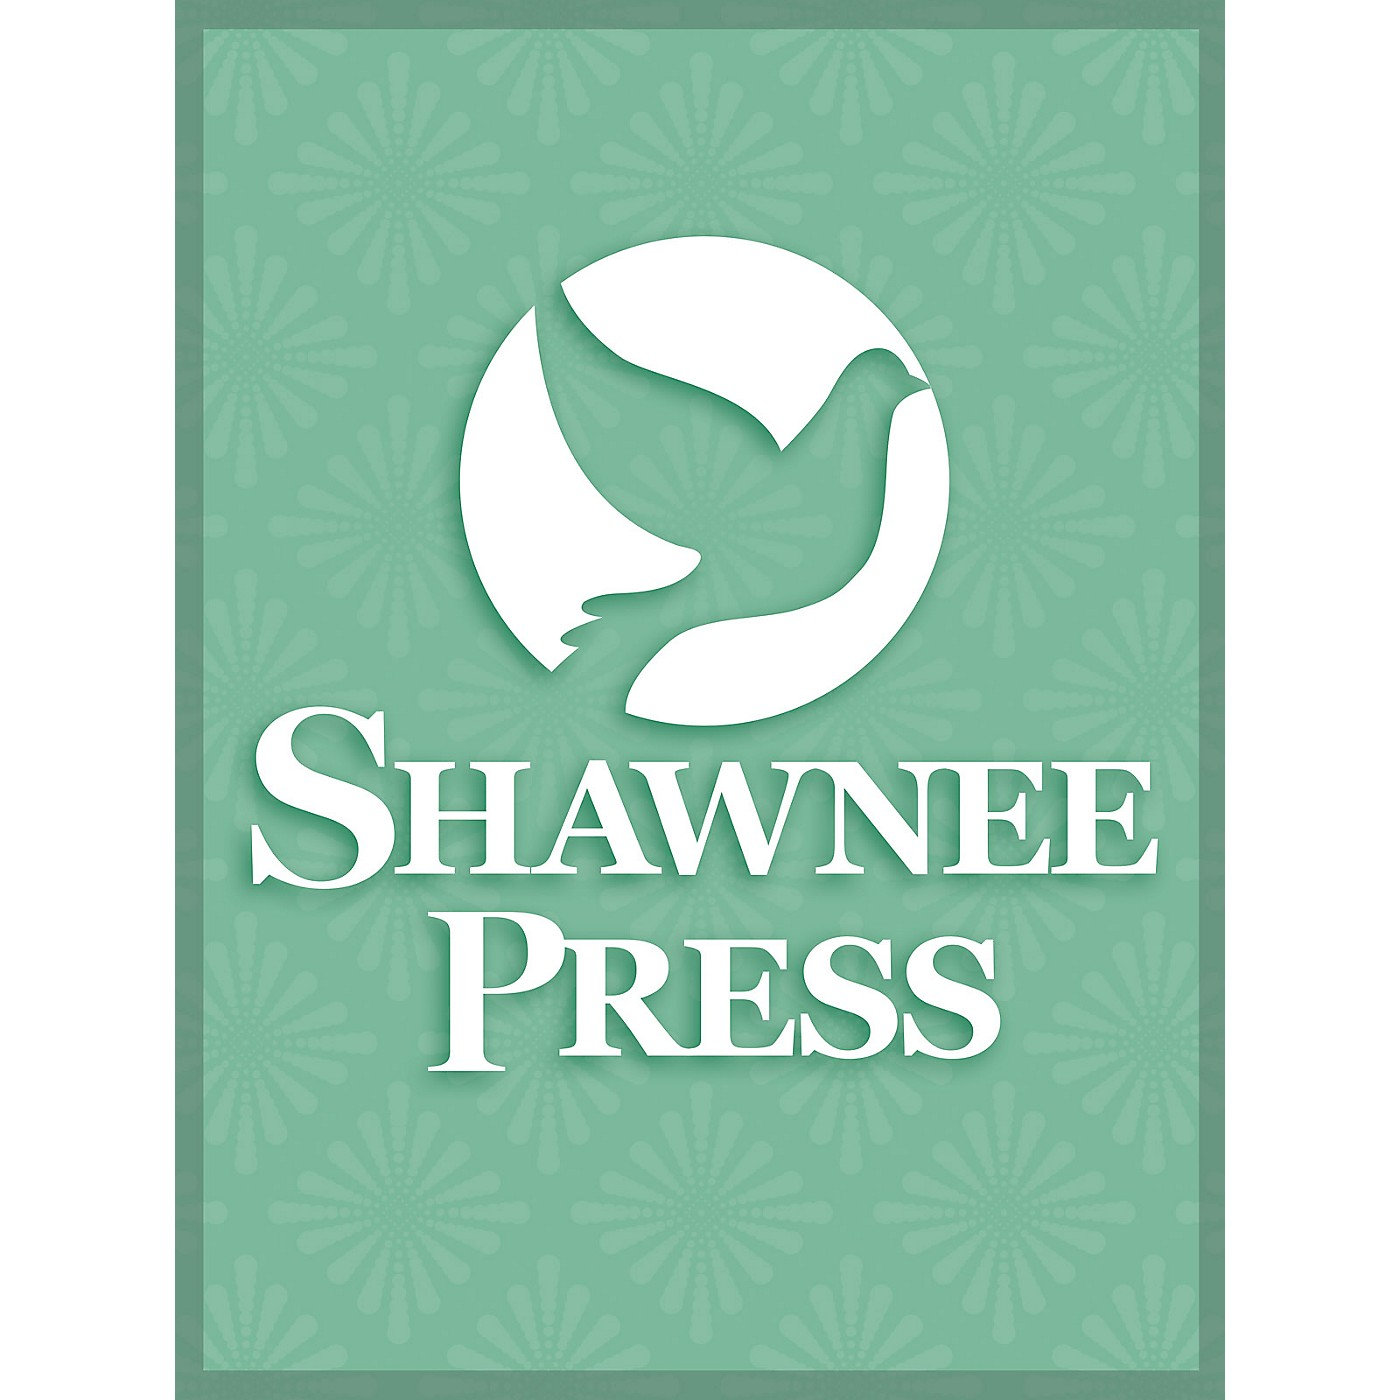 Margun Music Preludes and Fugues Group 2 (Piano Solo) Shawnee Press Series thumbnail